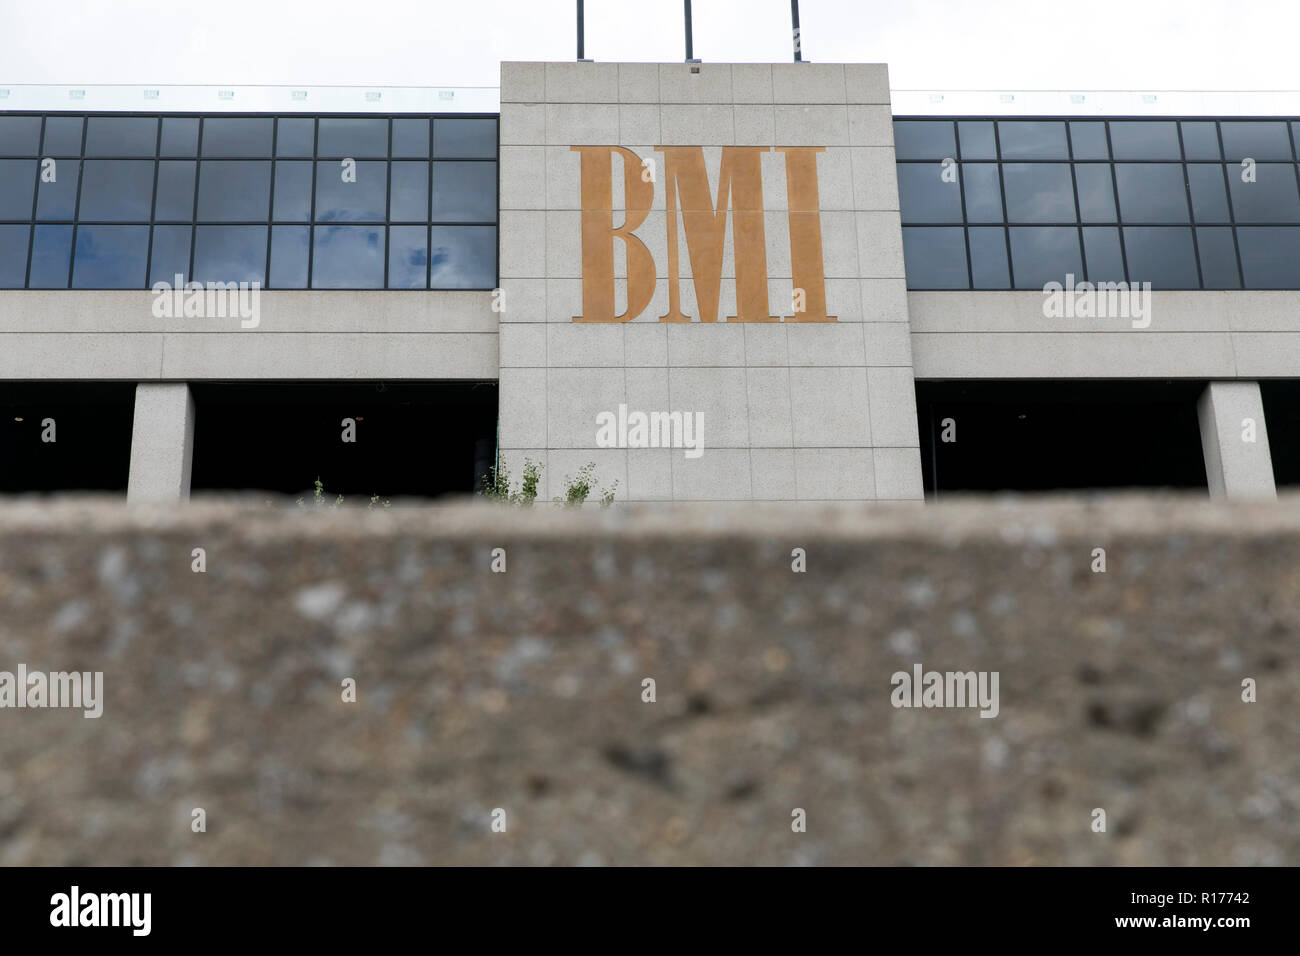 A logo sign outside of a facility occupied by Broadcast Music, Inc. (BMI) in Nashville, Tennessee, on October 9, 2018. - Stock Image